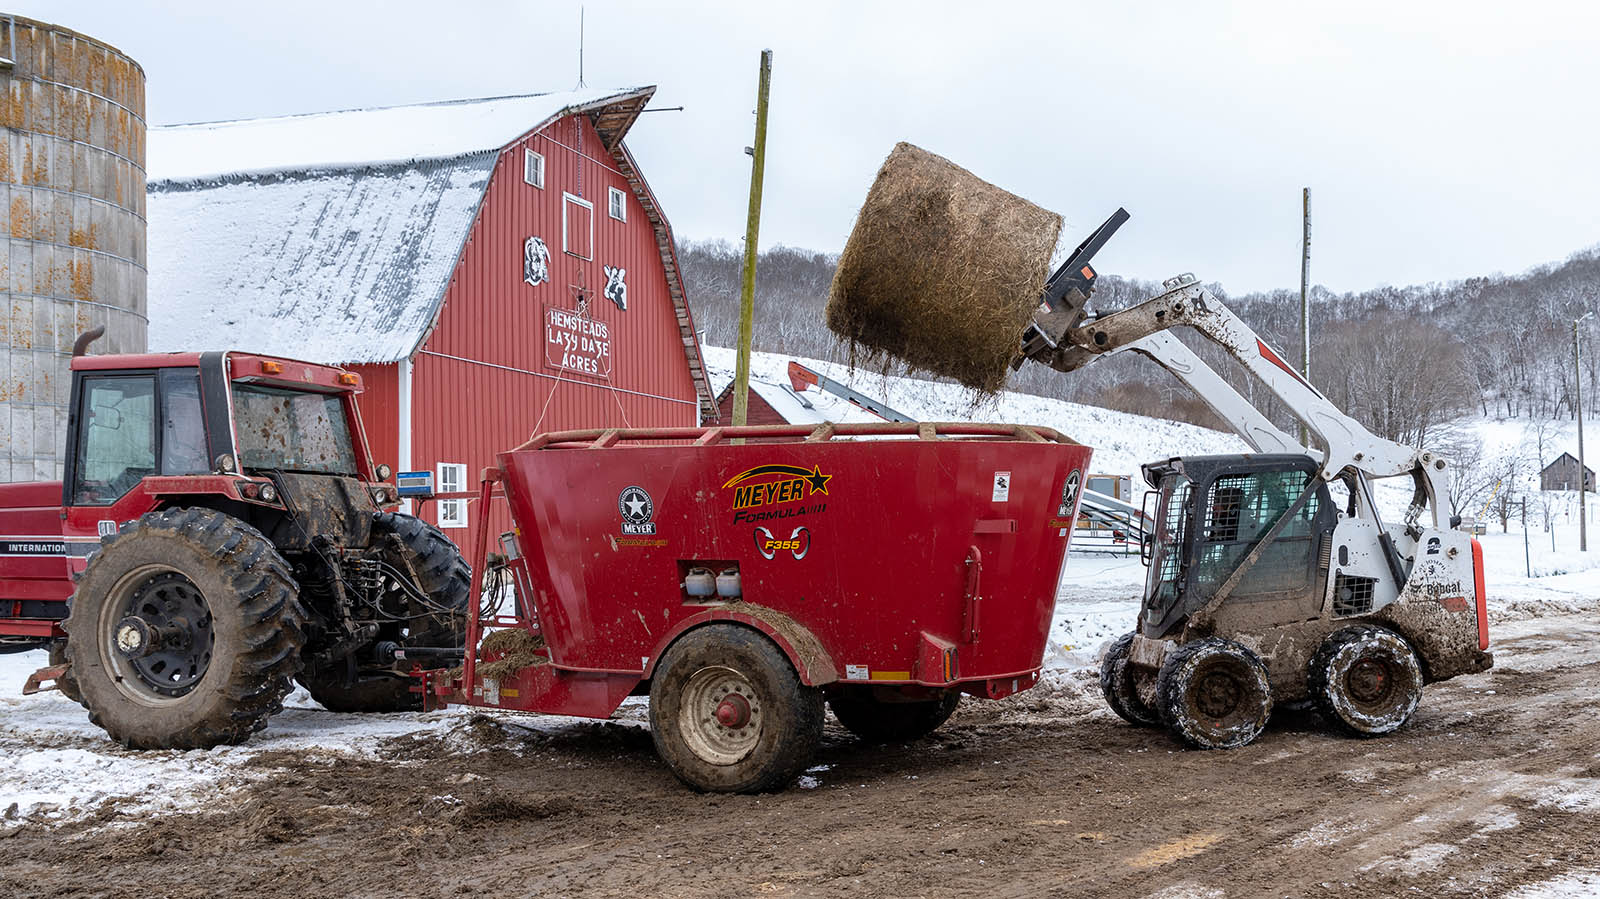 Using the end-loader to lift a round hay bale into a trailer pulled by a tractor.